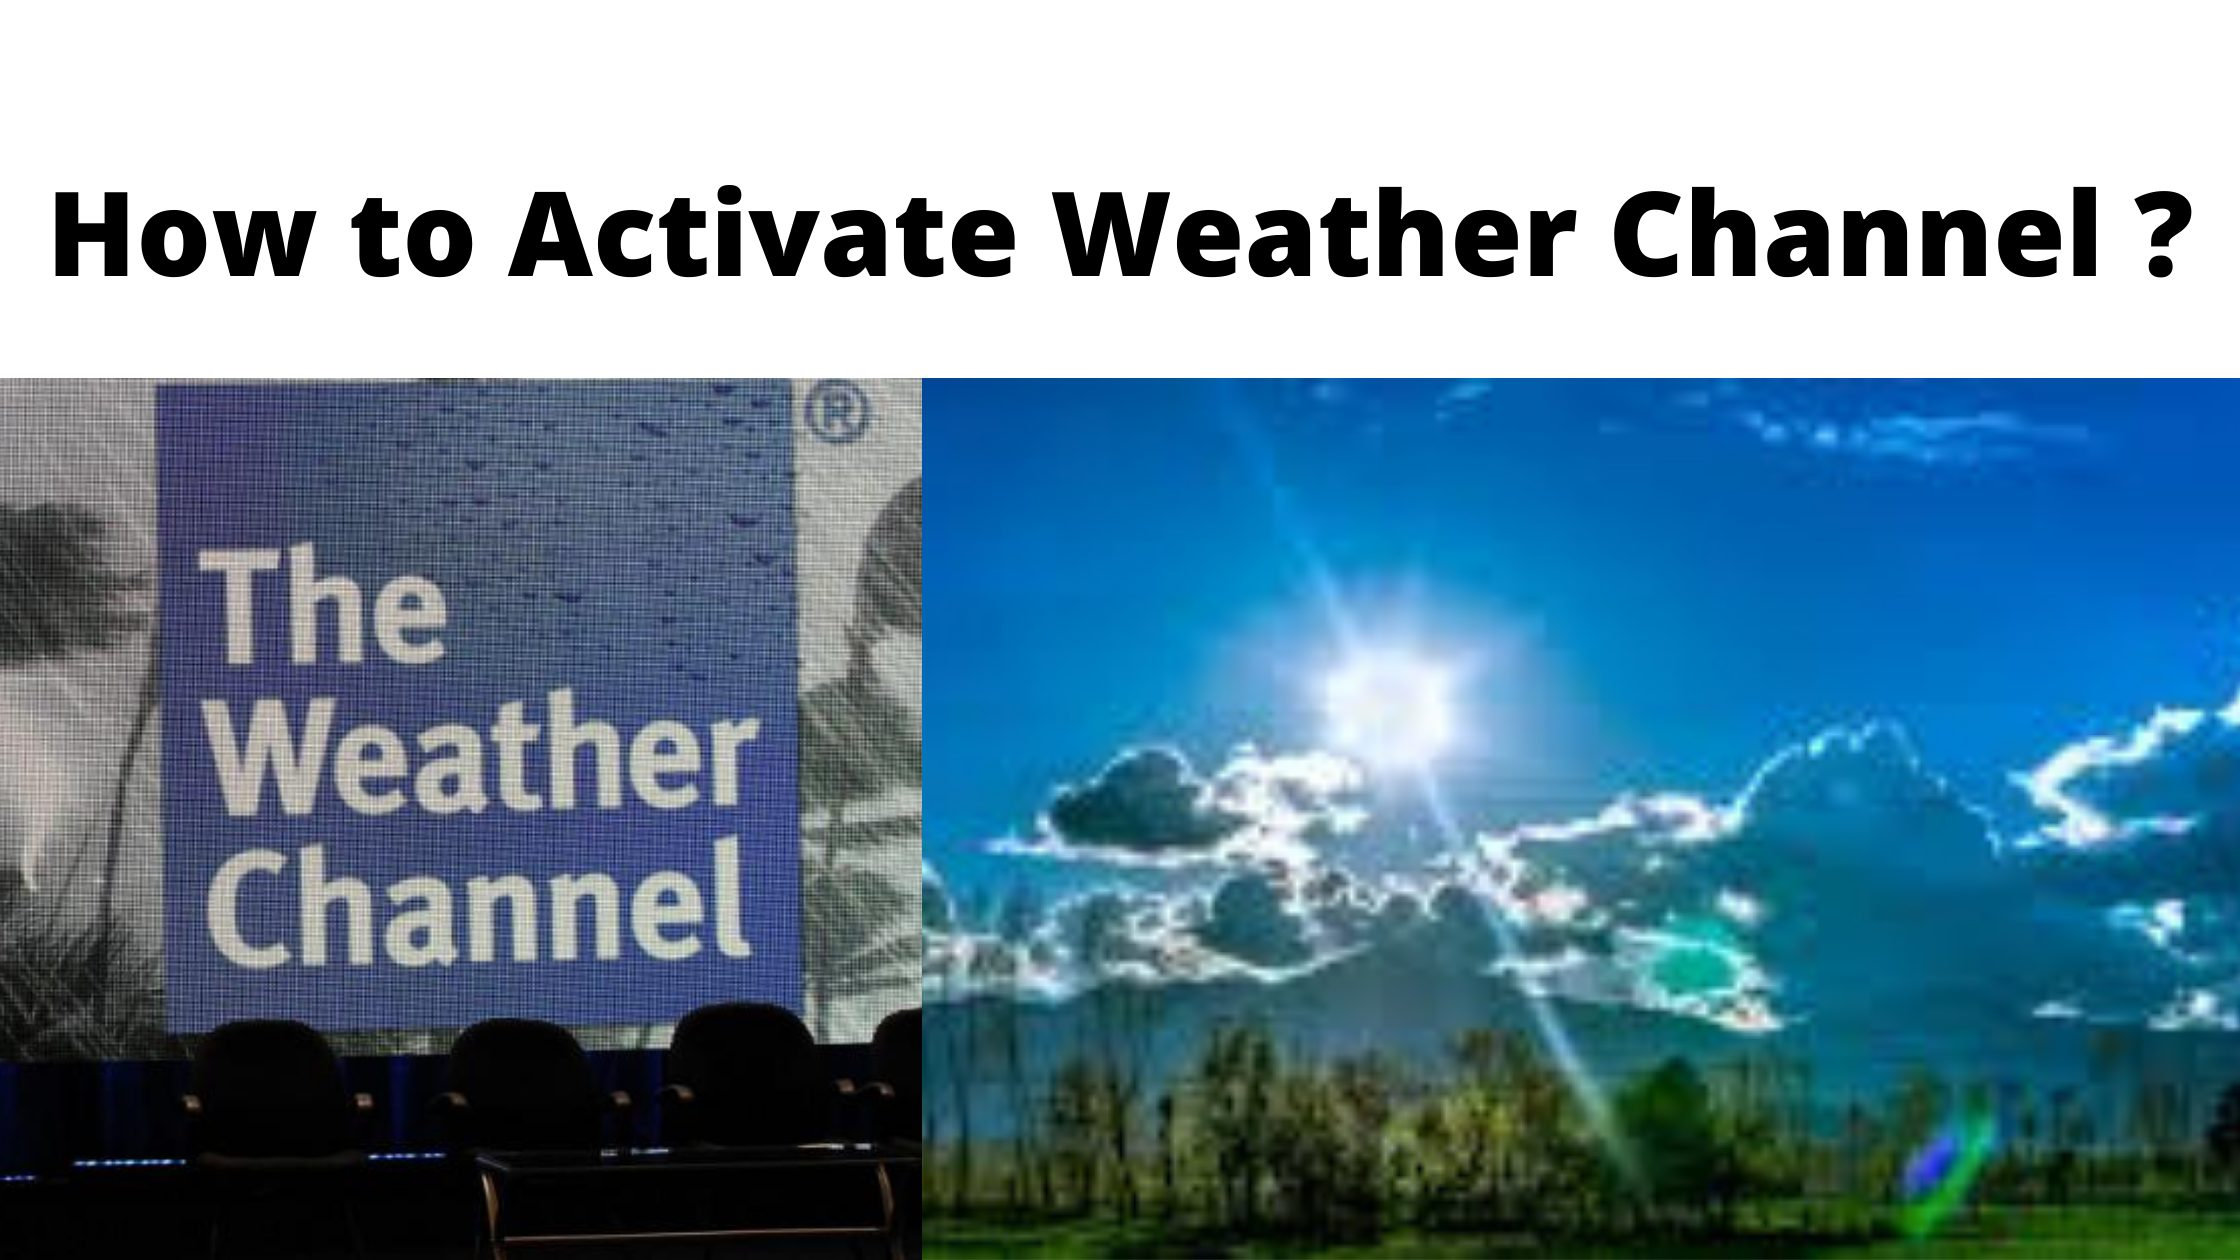 How to Activate Weather Channel